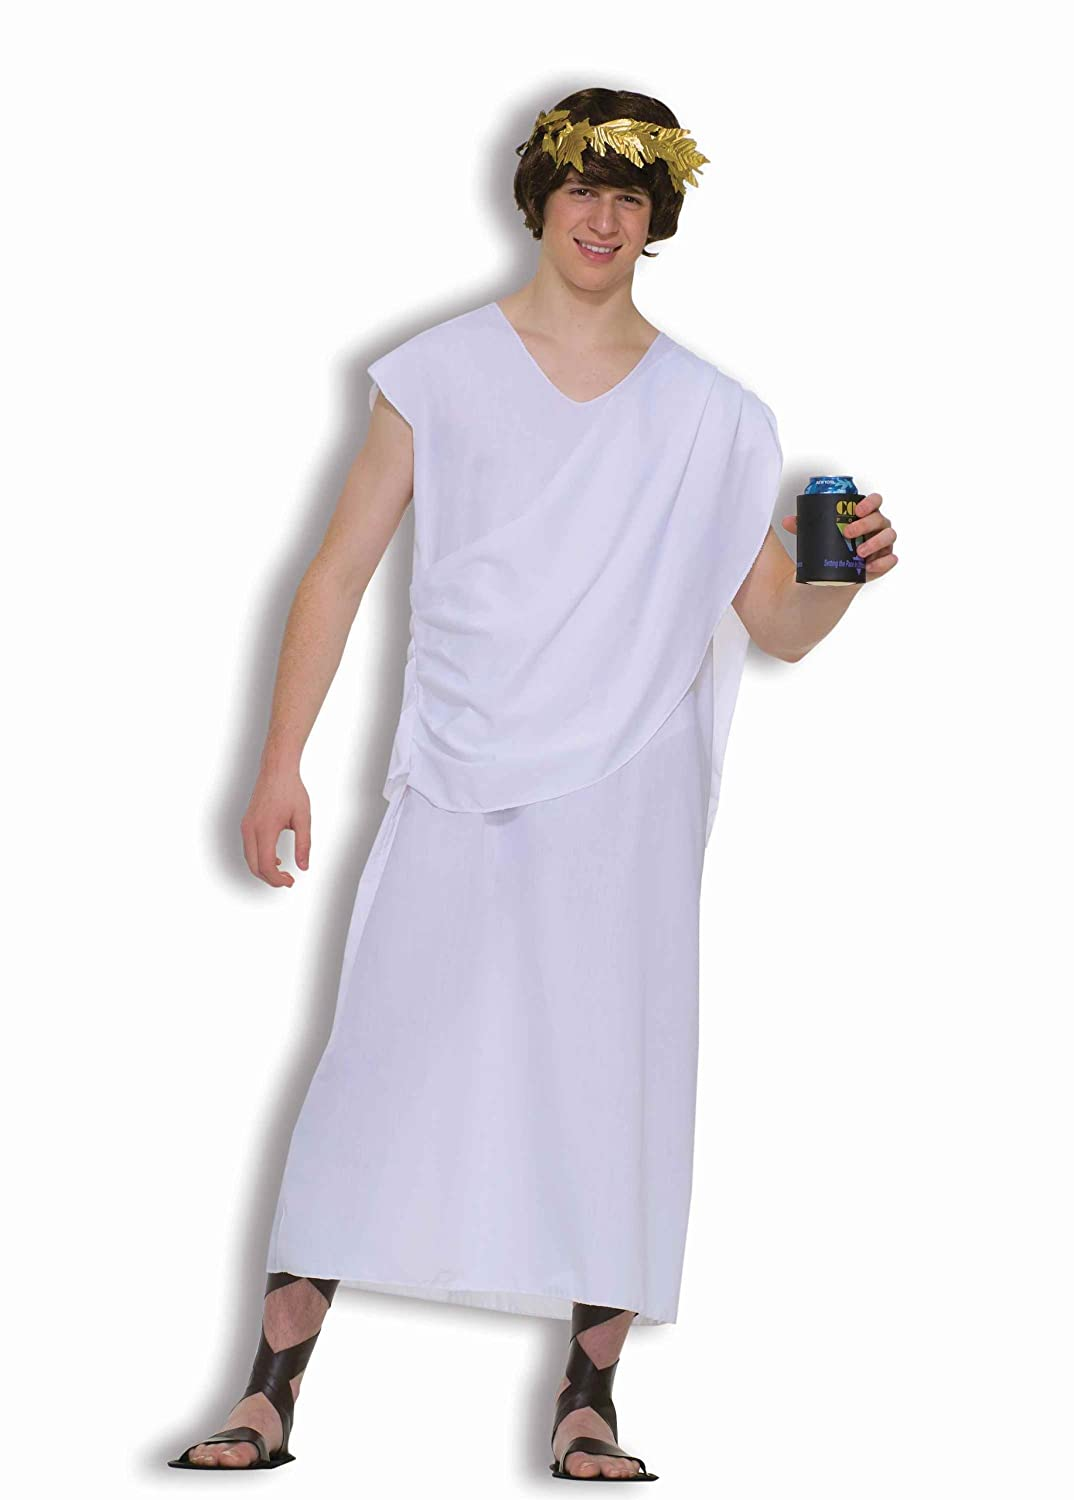 Forum Novelties Men's Teenz Unisex Costume Toga forum novelties men s teenz unisex costume toga